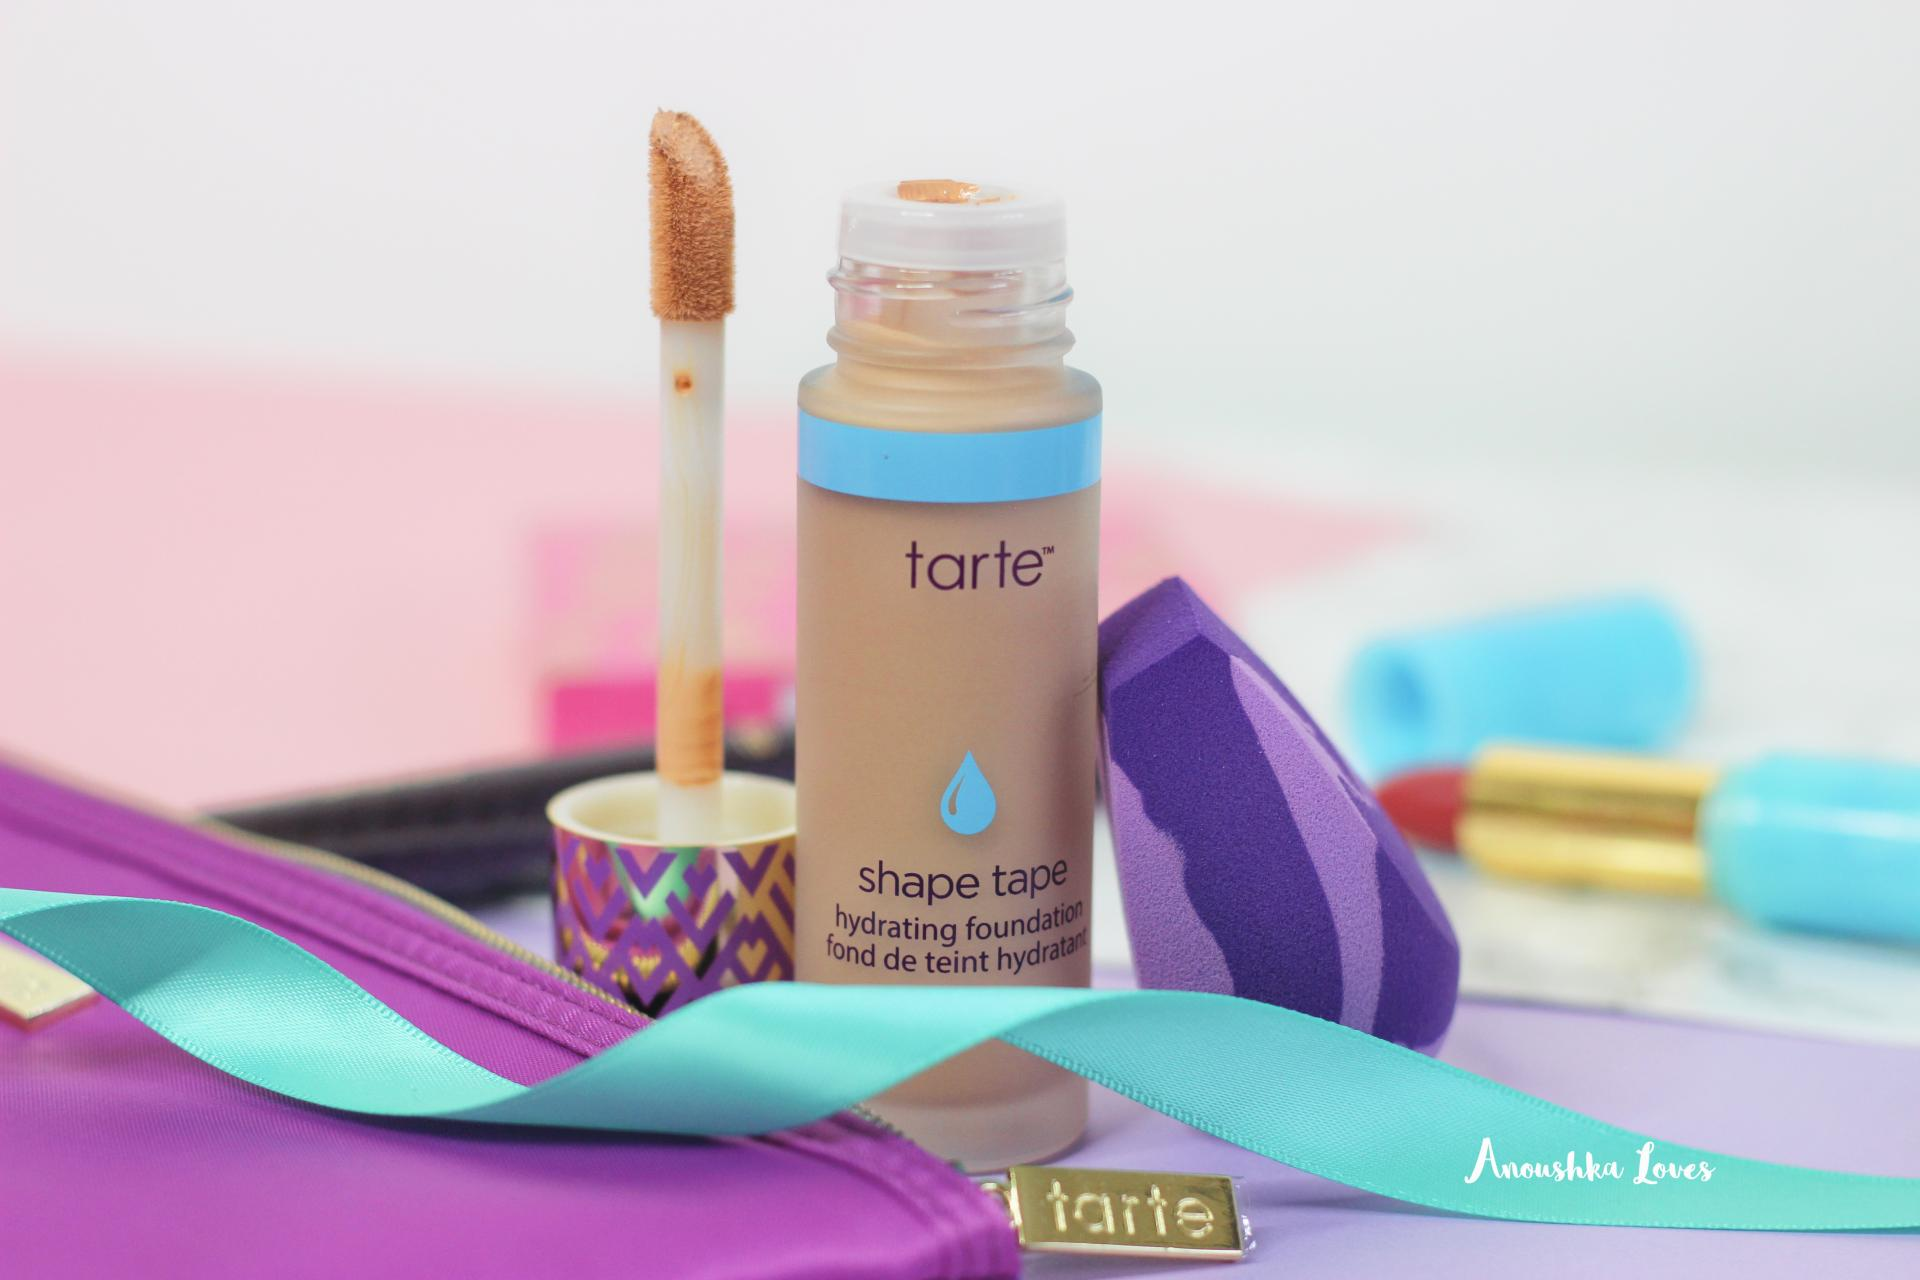 The Tarte Shape Tape Foundation Collection at QVC